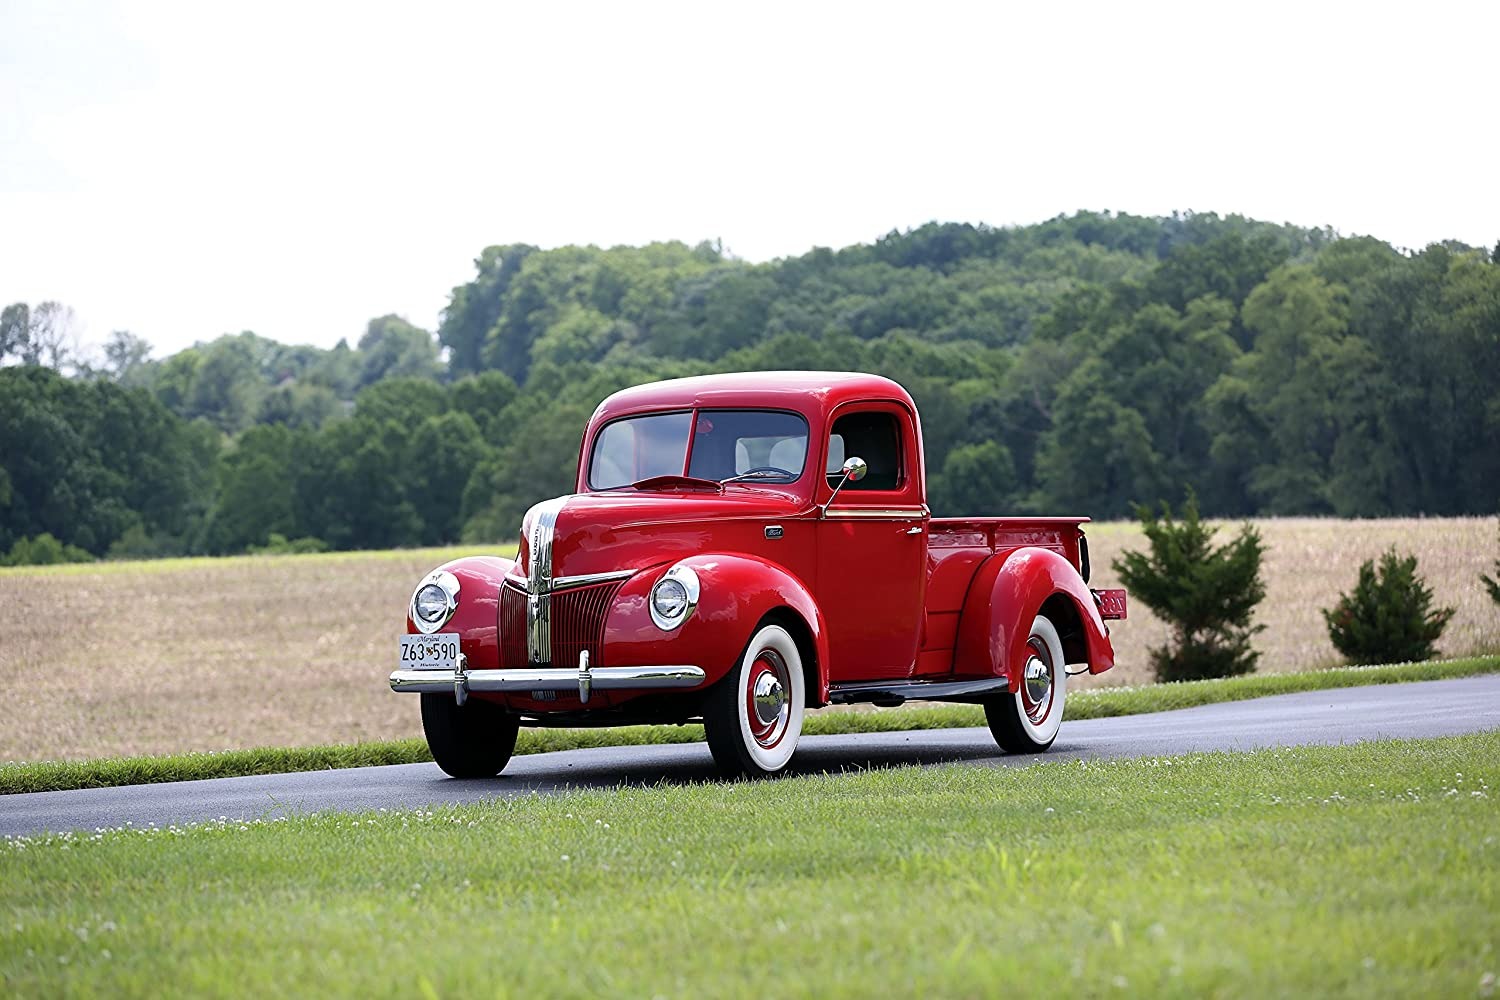 Ford Deluxe Pickup 1941 Truck Print On 10 Mil Archival Front Fenders Satin Paper Red Side Static View 11x17 Posters Prints